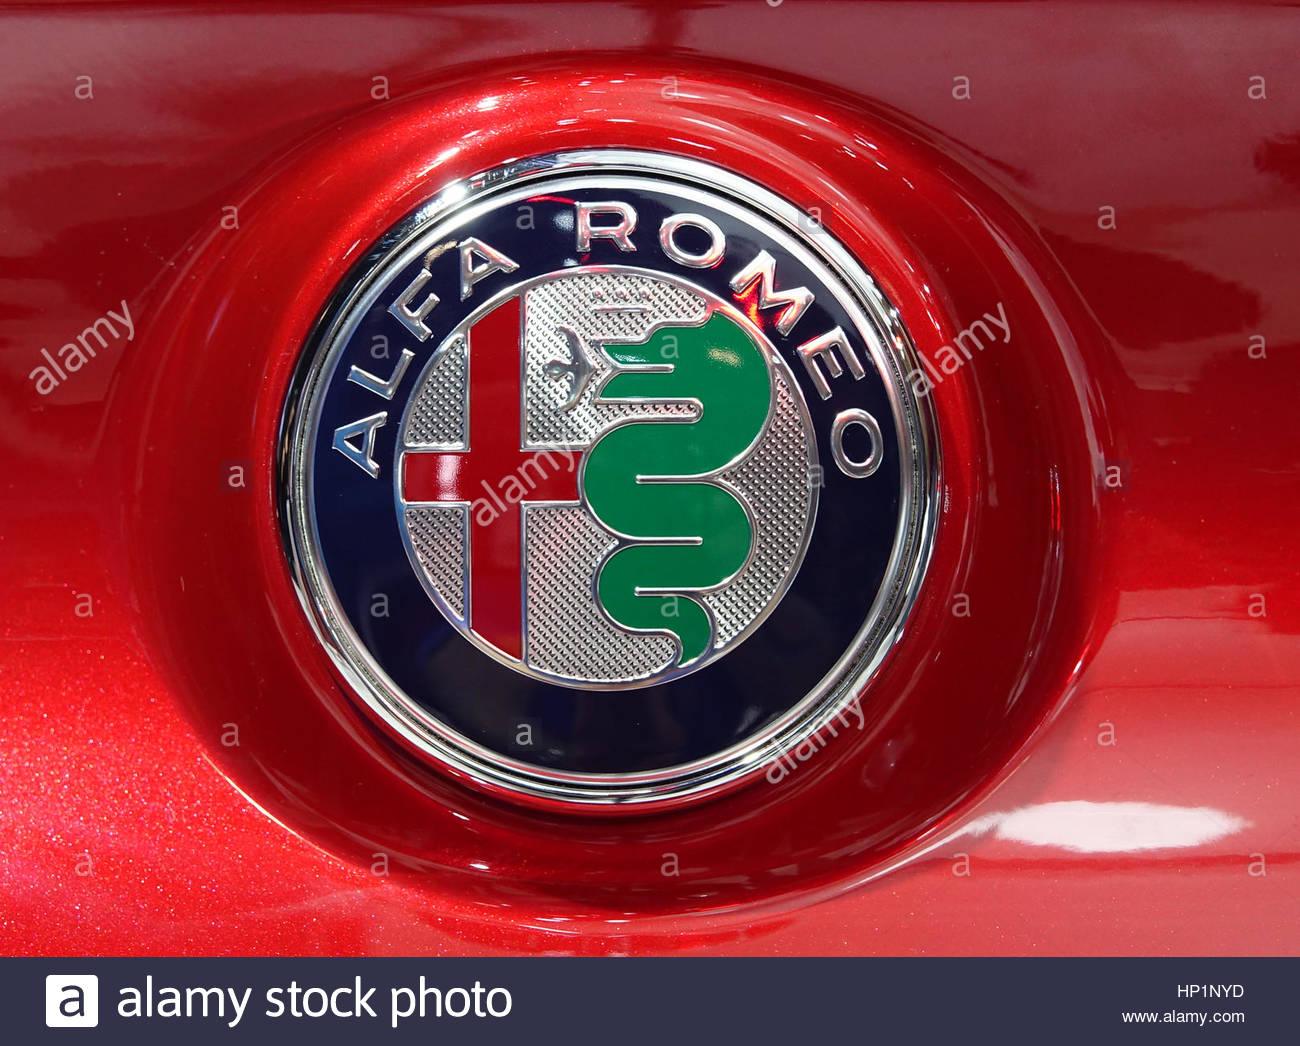 Alfa Romeo Logo Stock Photos Images Alamy Toronto Canada 17th February 2017 The Canadian